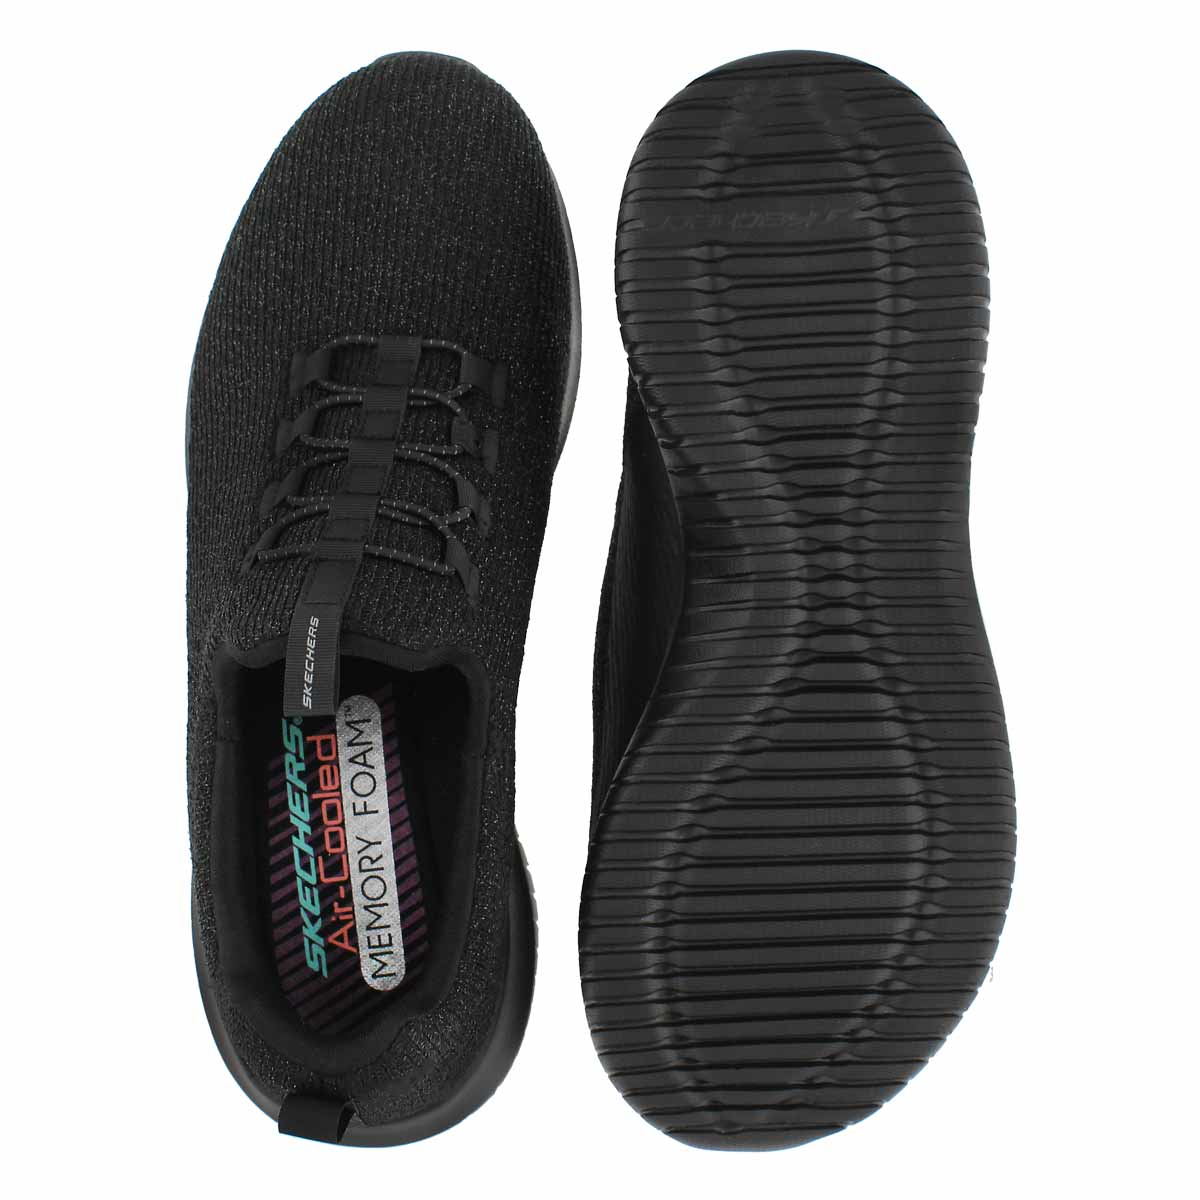 Lds Ultra Flex blk/blk slip on snkr